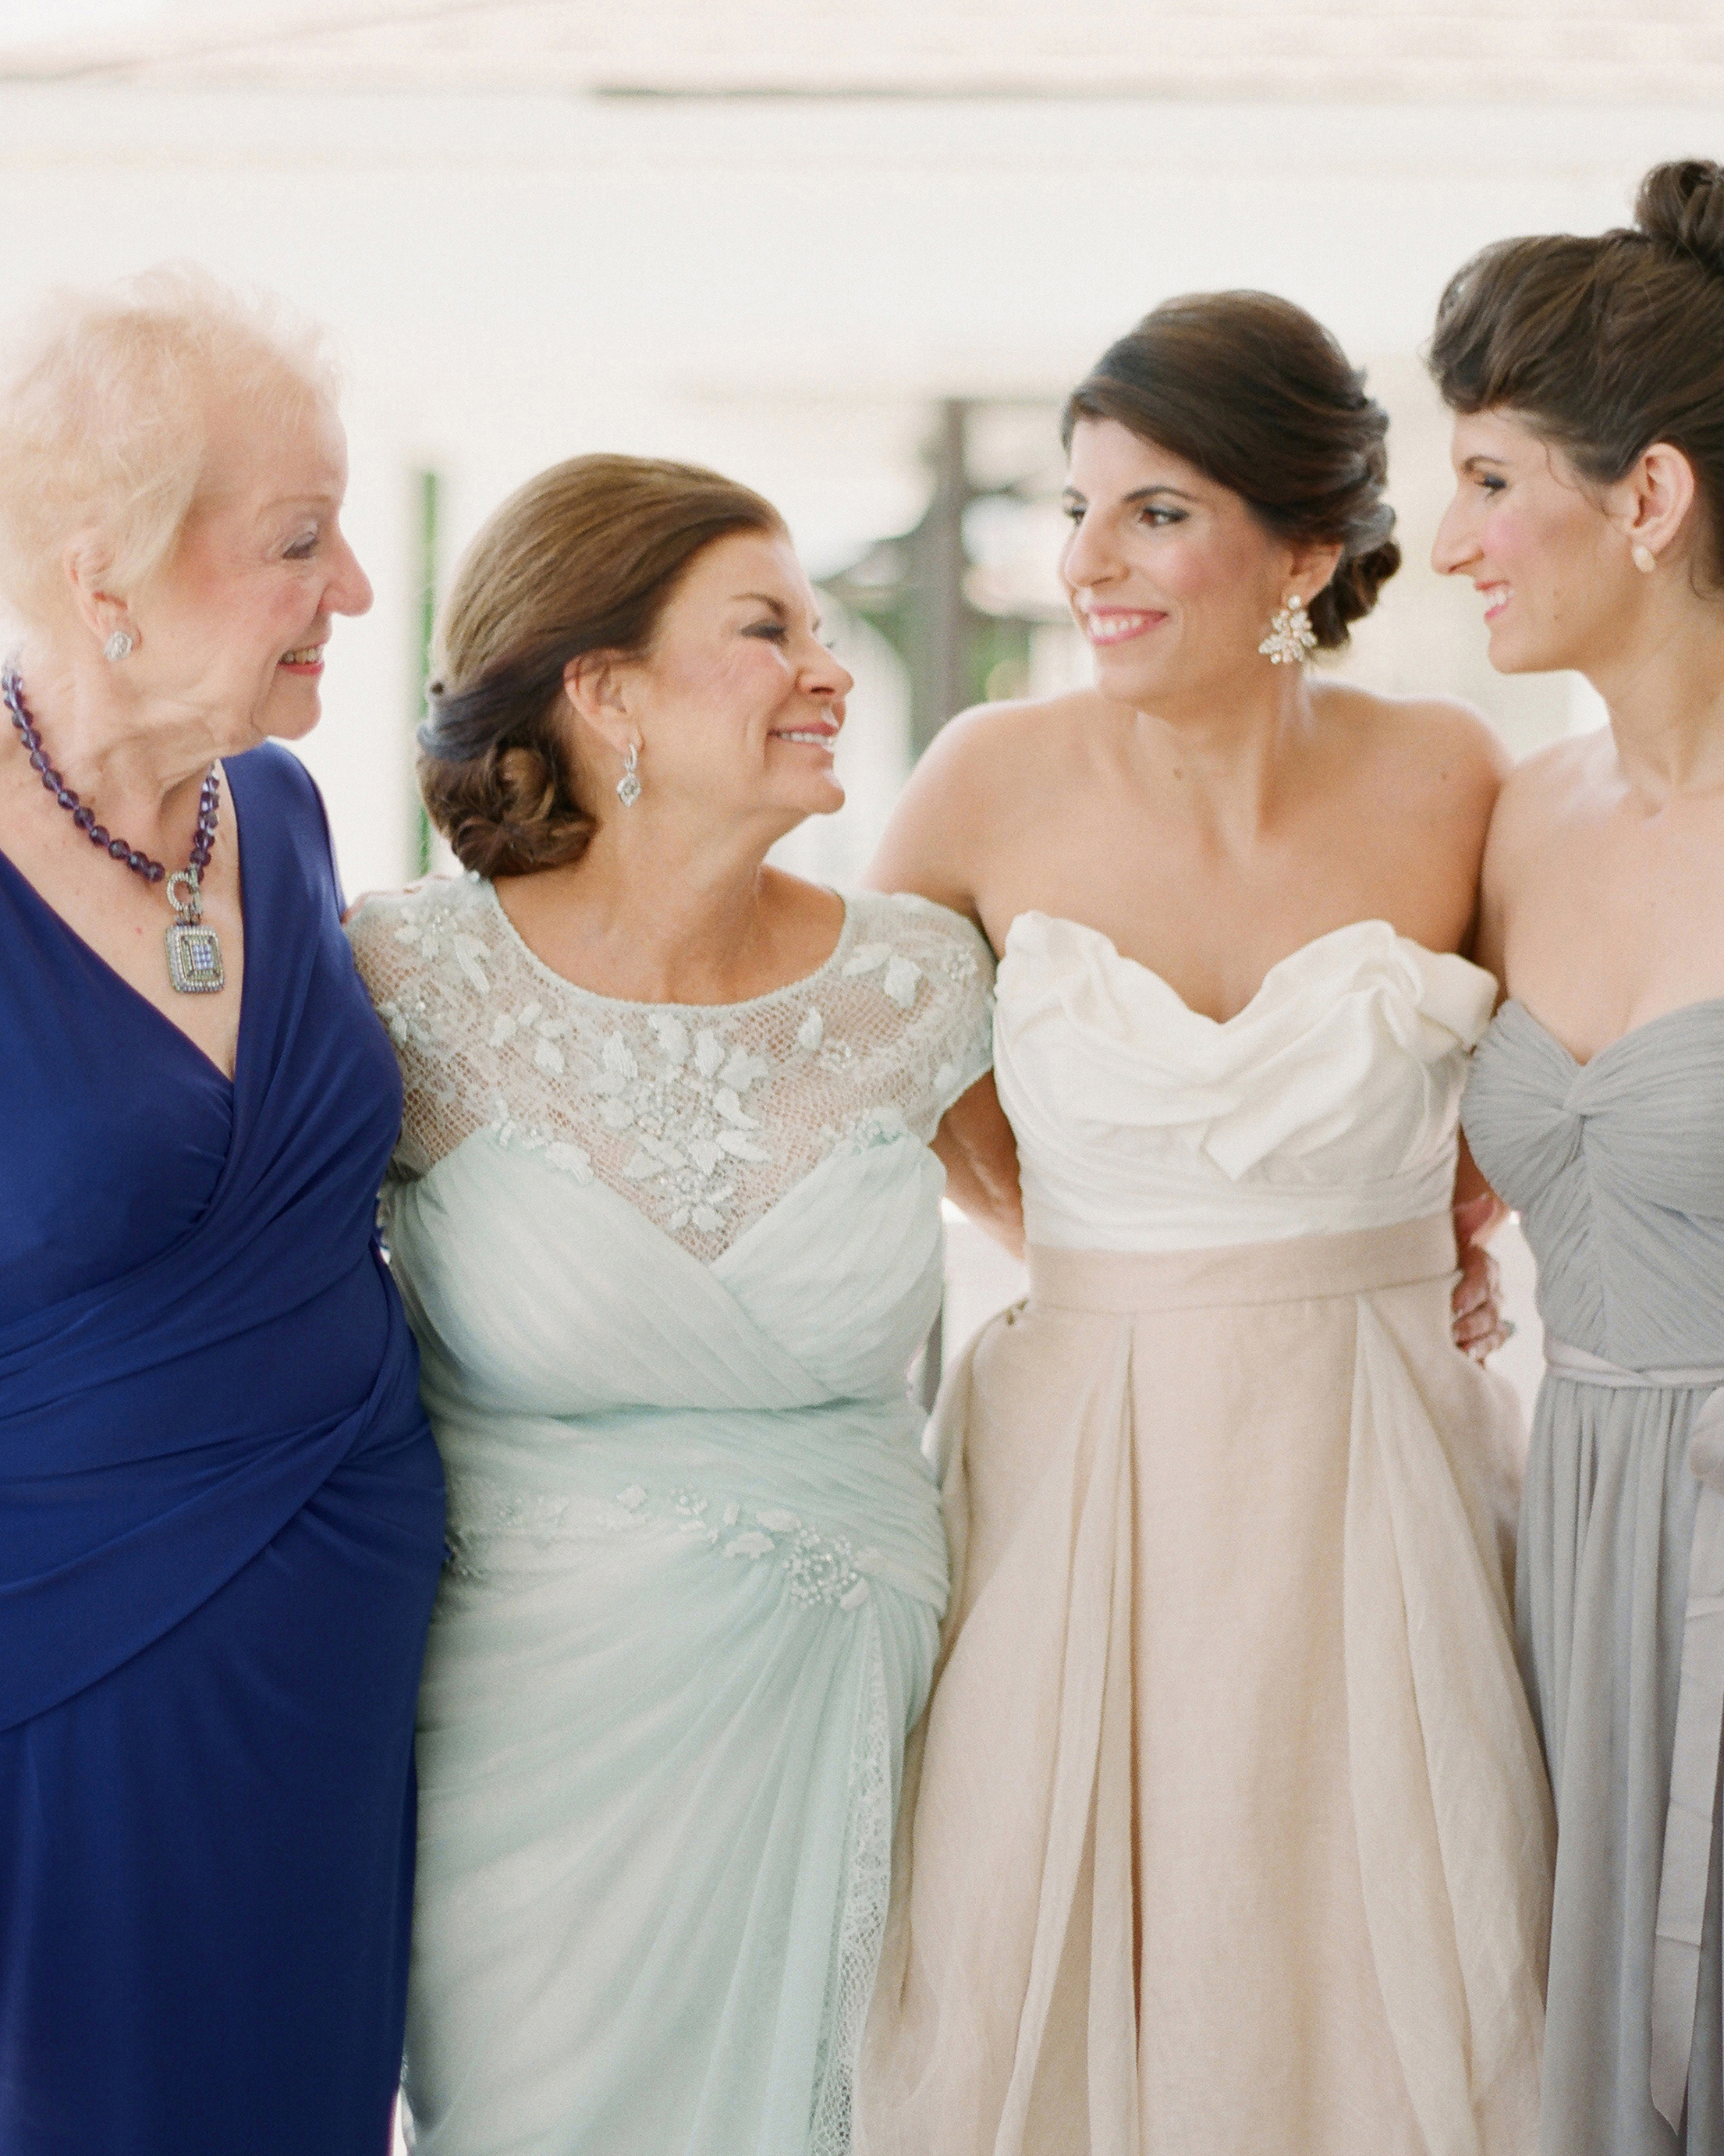 How to Manage All the Moms in Your Life on Your Wedding Day